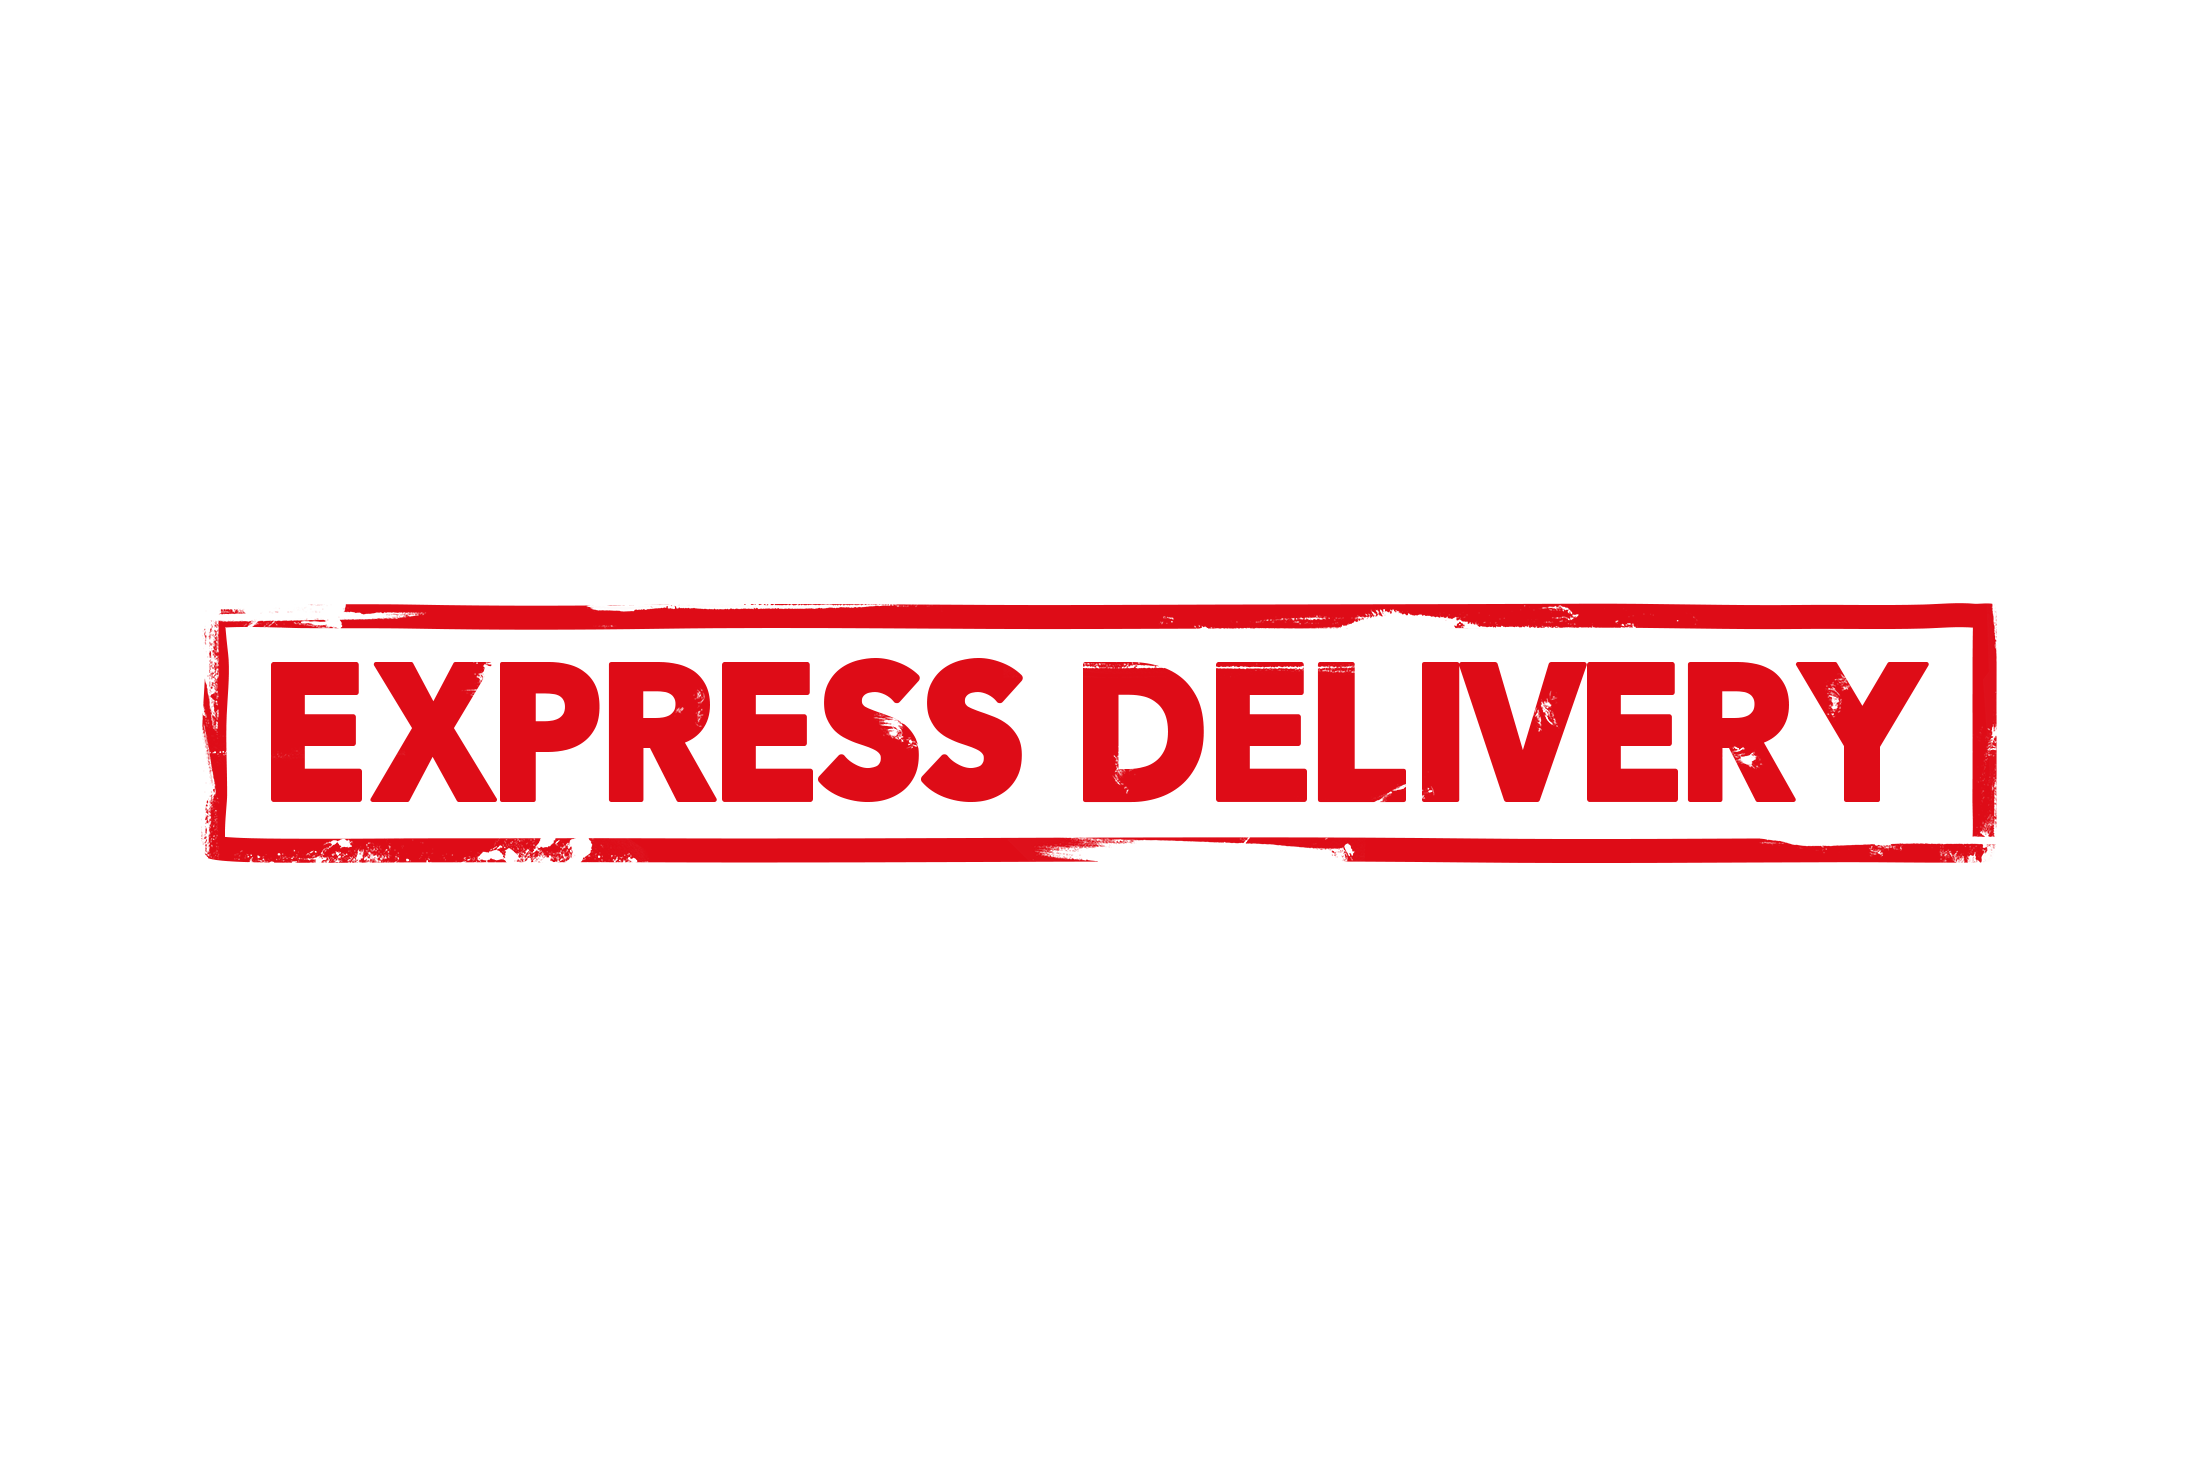 Express delivery stamp PSD